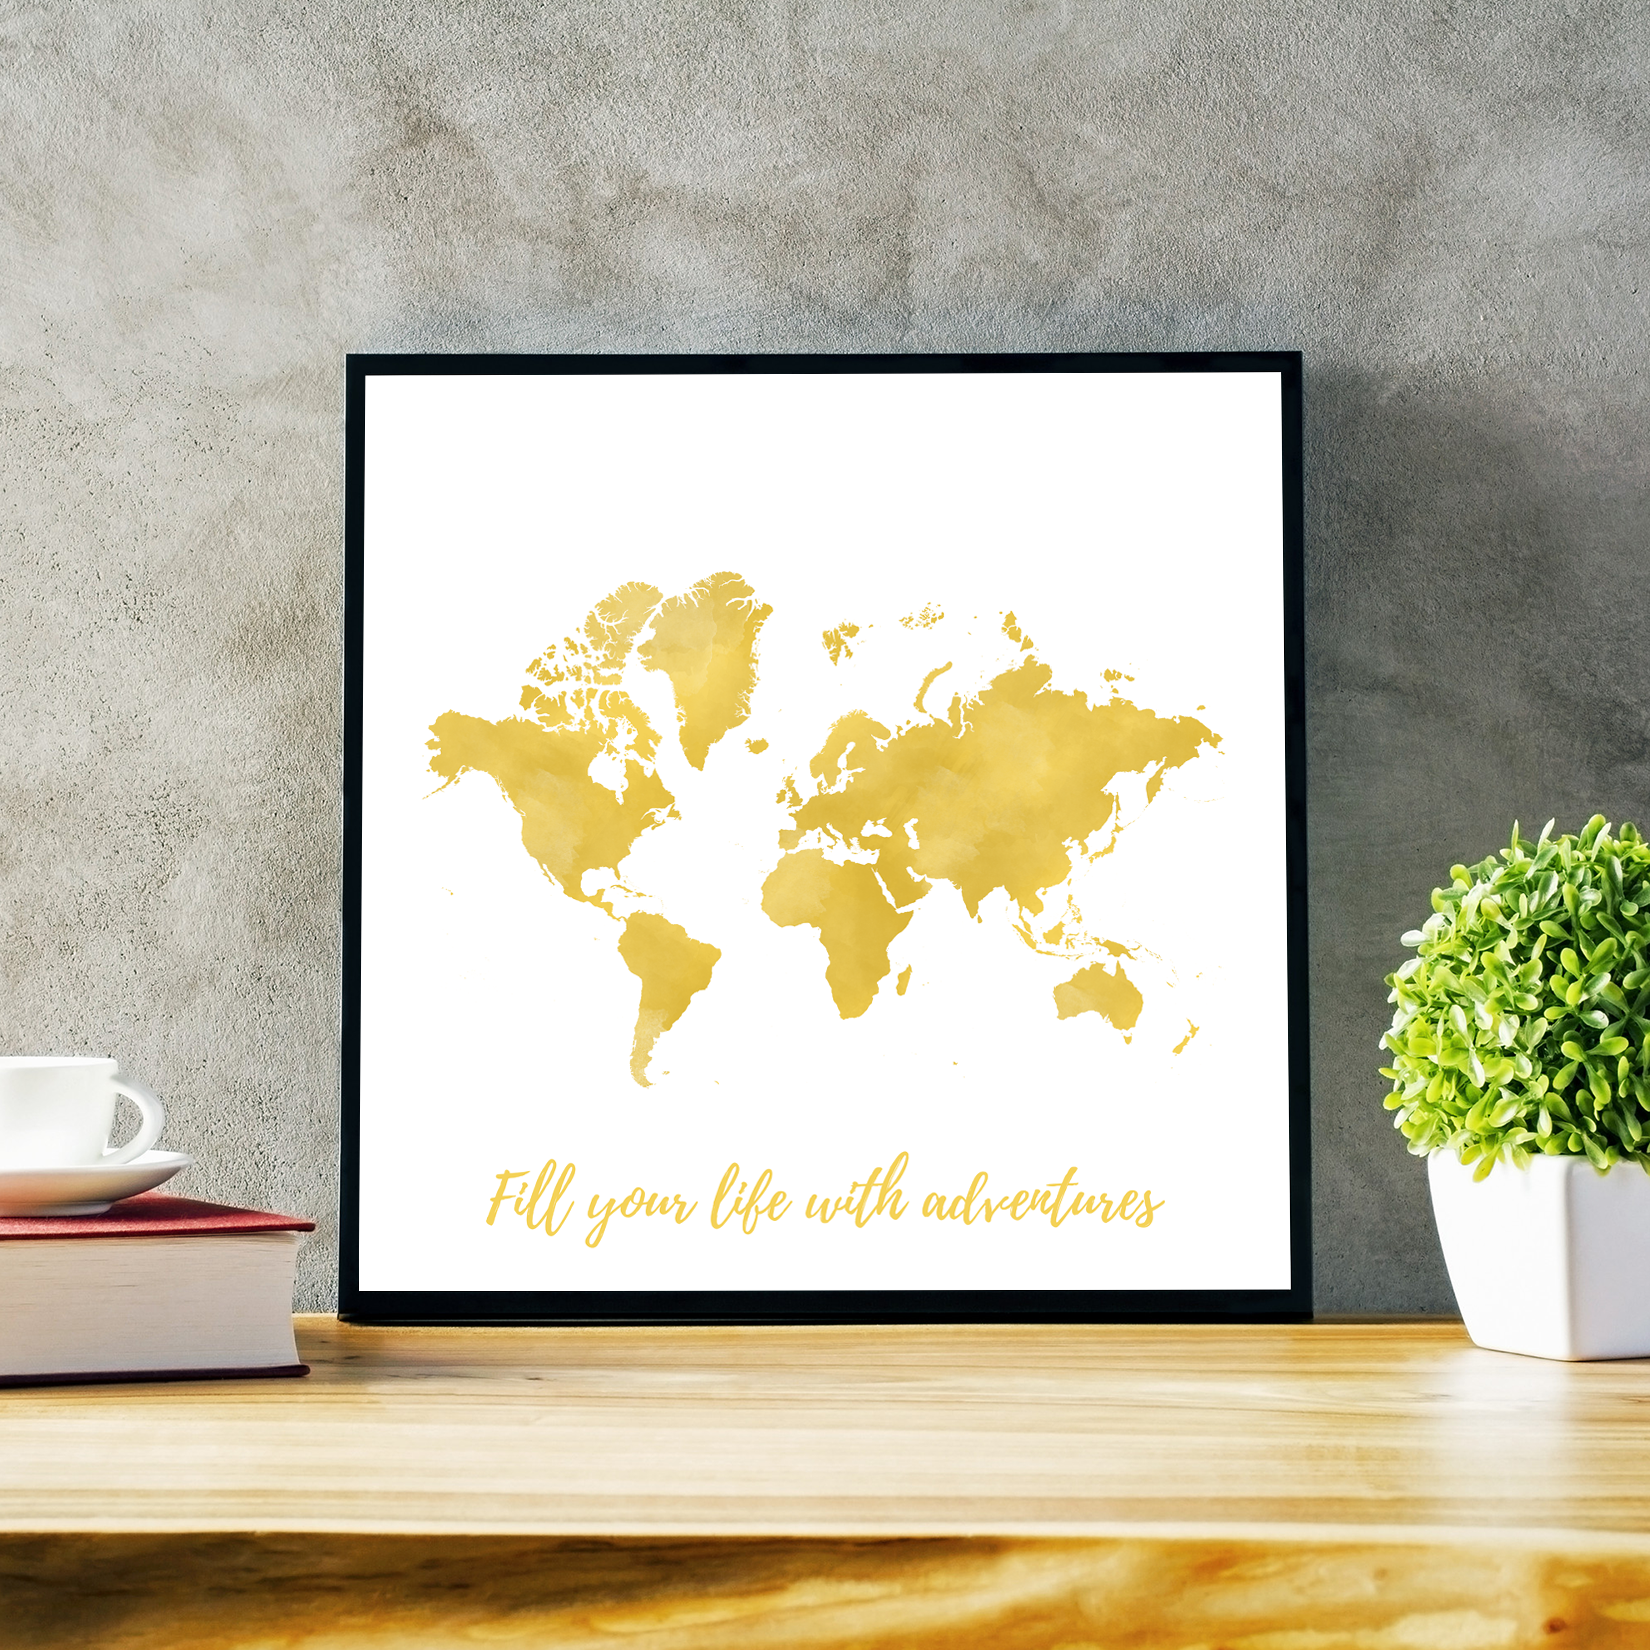 Personalised City Maps - Create your custom map poster